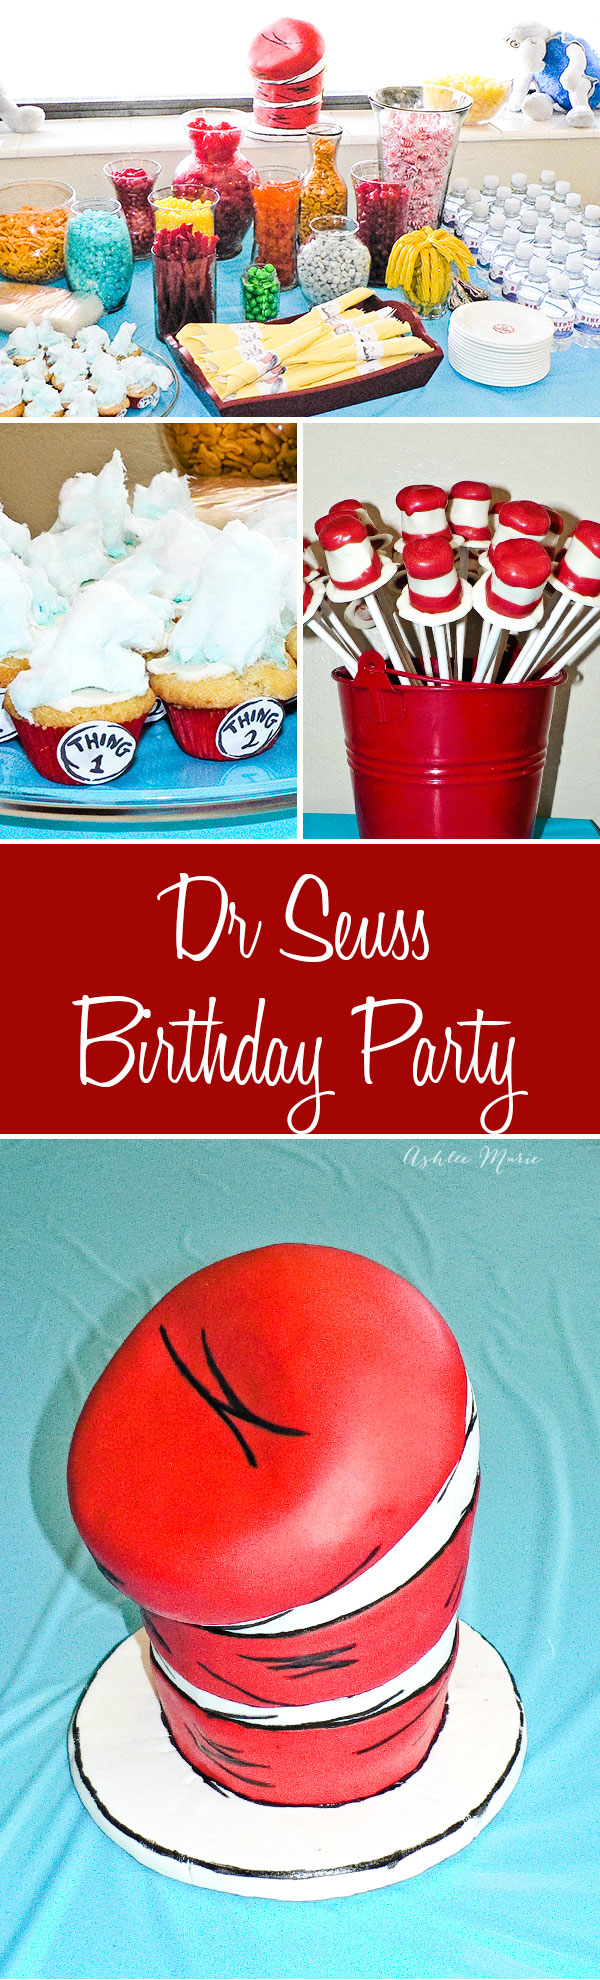 a fun dr seuss party, cake, food, invites, favors and more